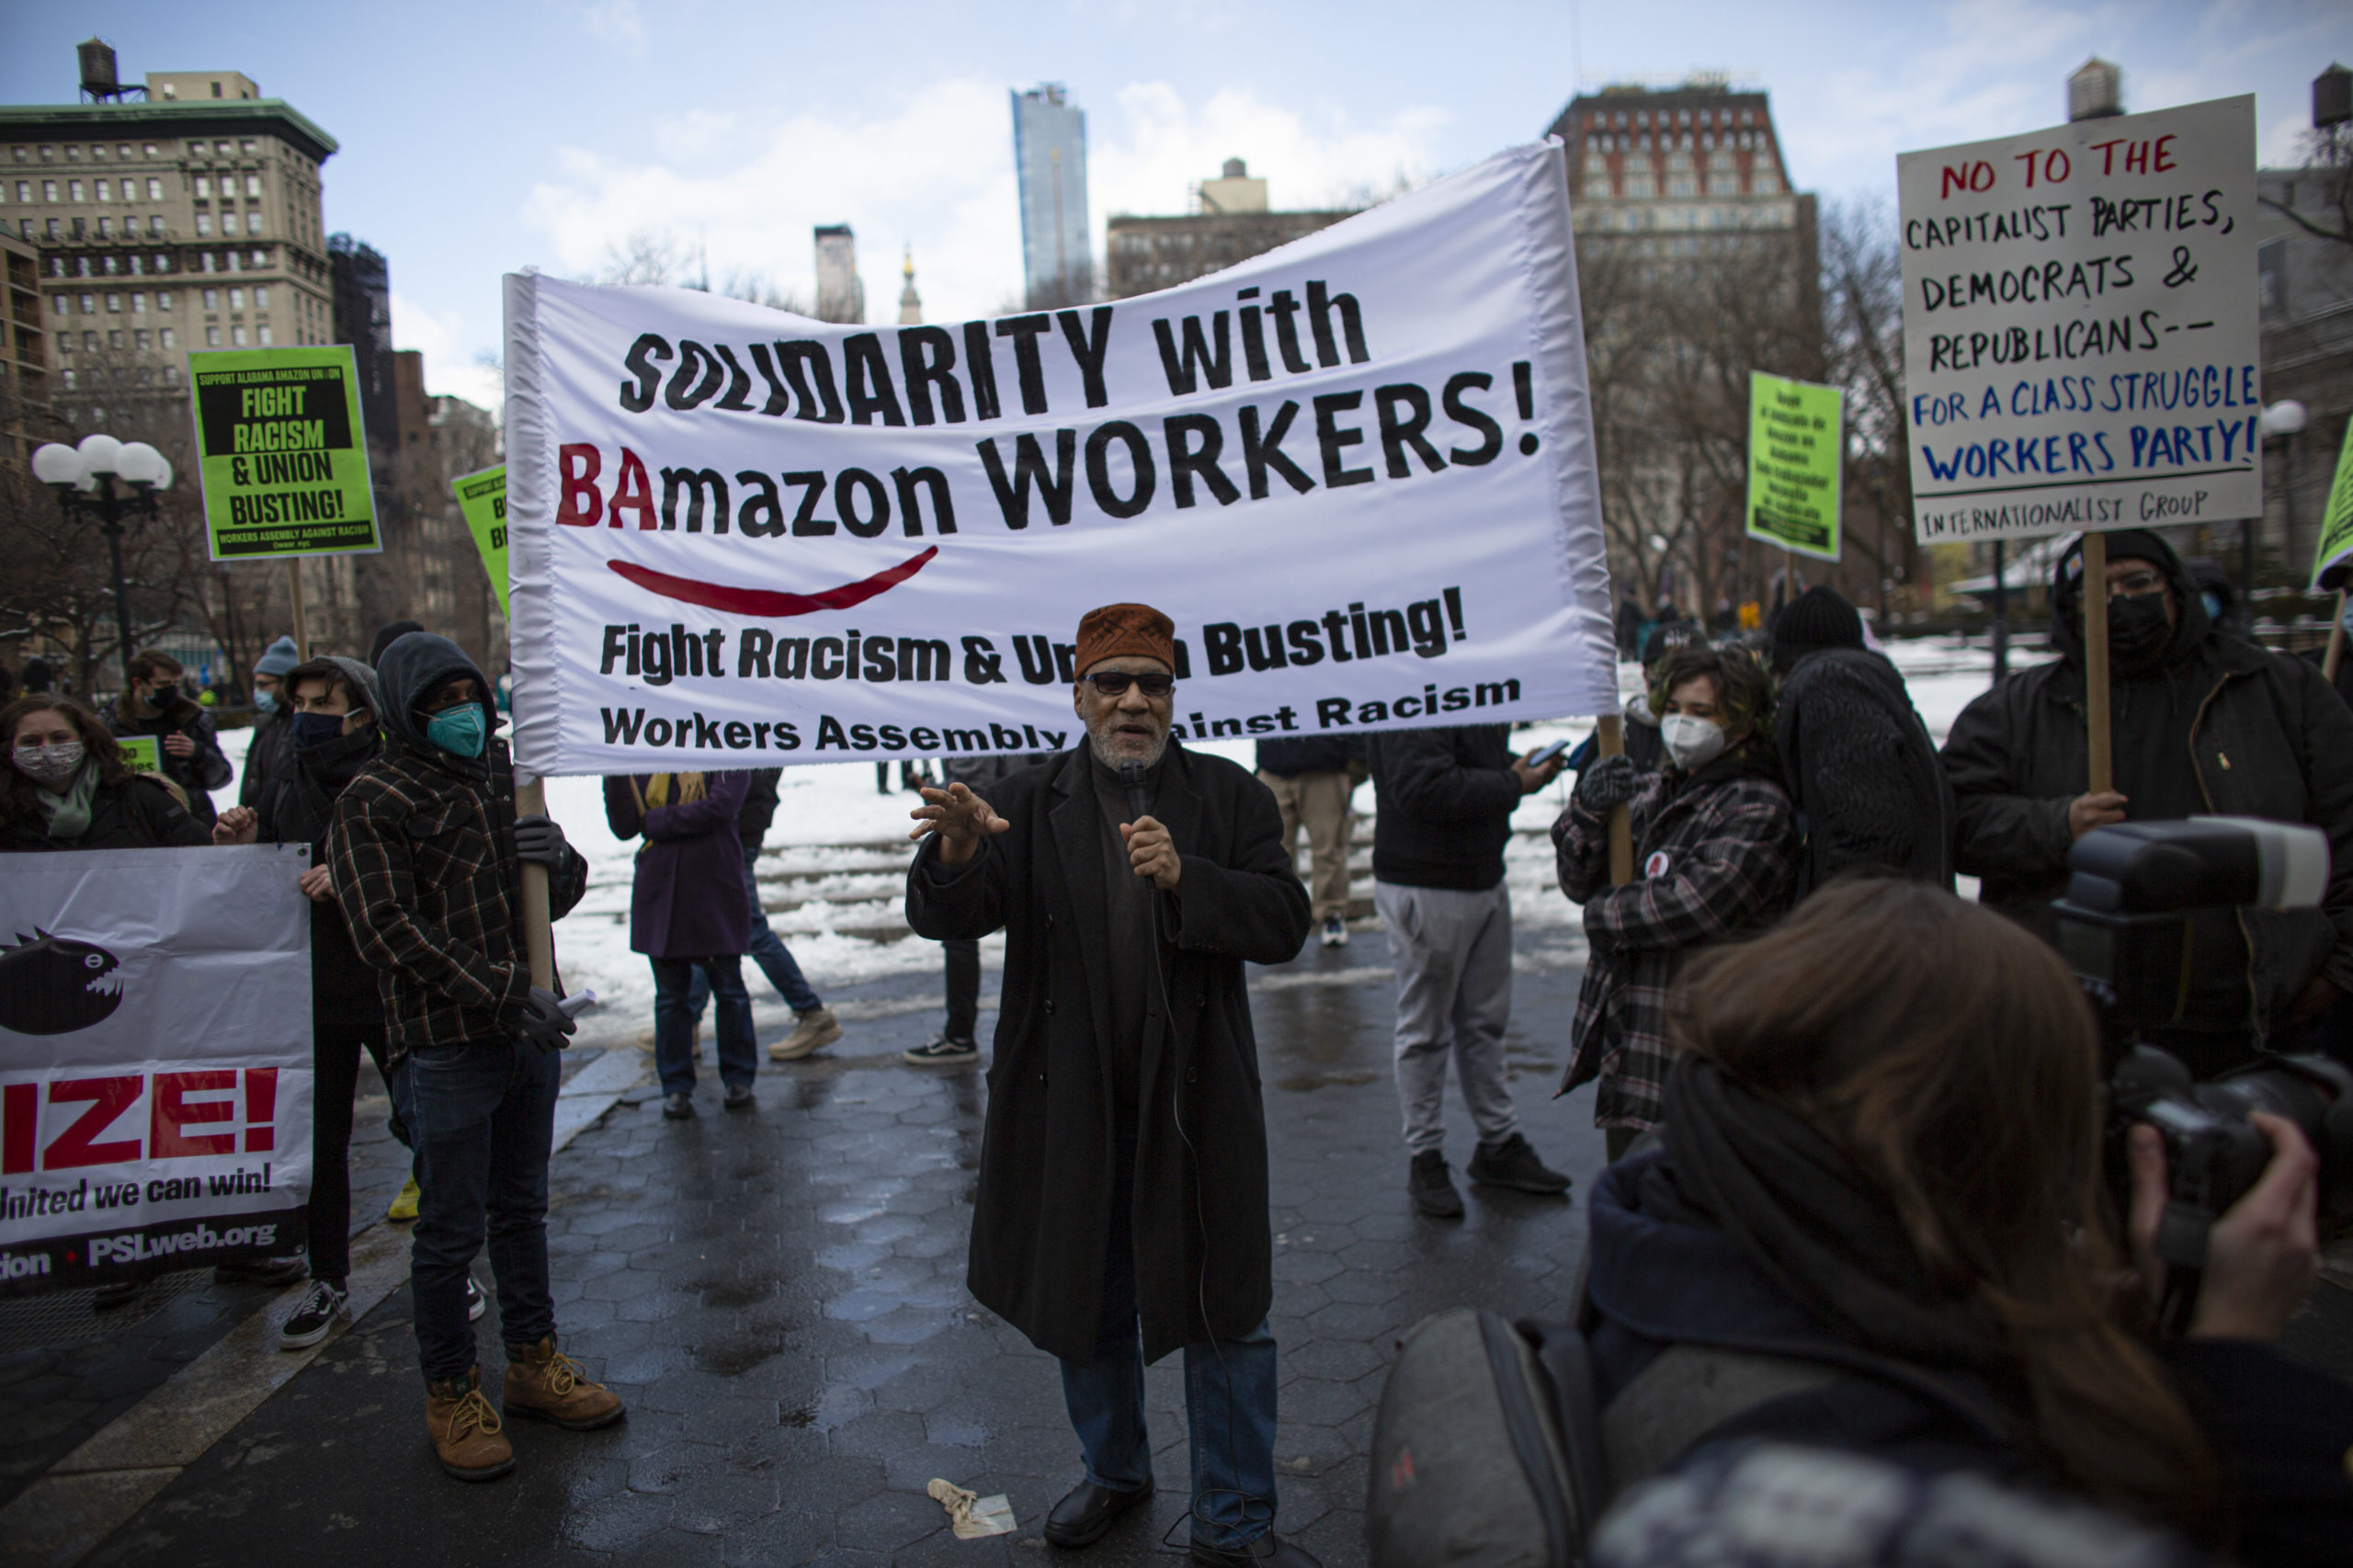 People gather during a protest in support of Amazon workers in Union Square, New York on Feb. 20. (Kena Betancur/AFP via Getty Images)